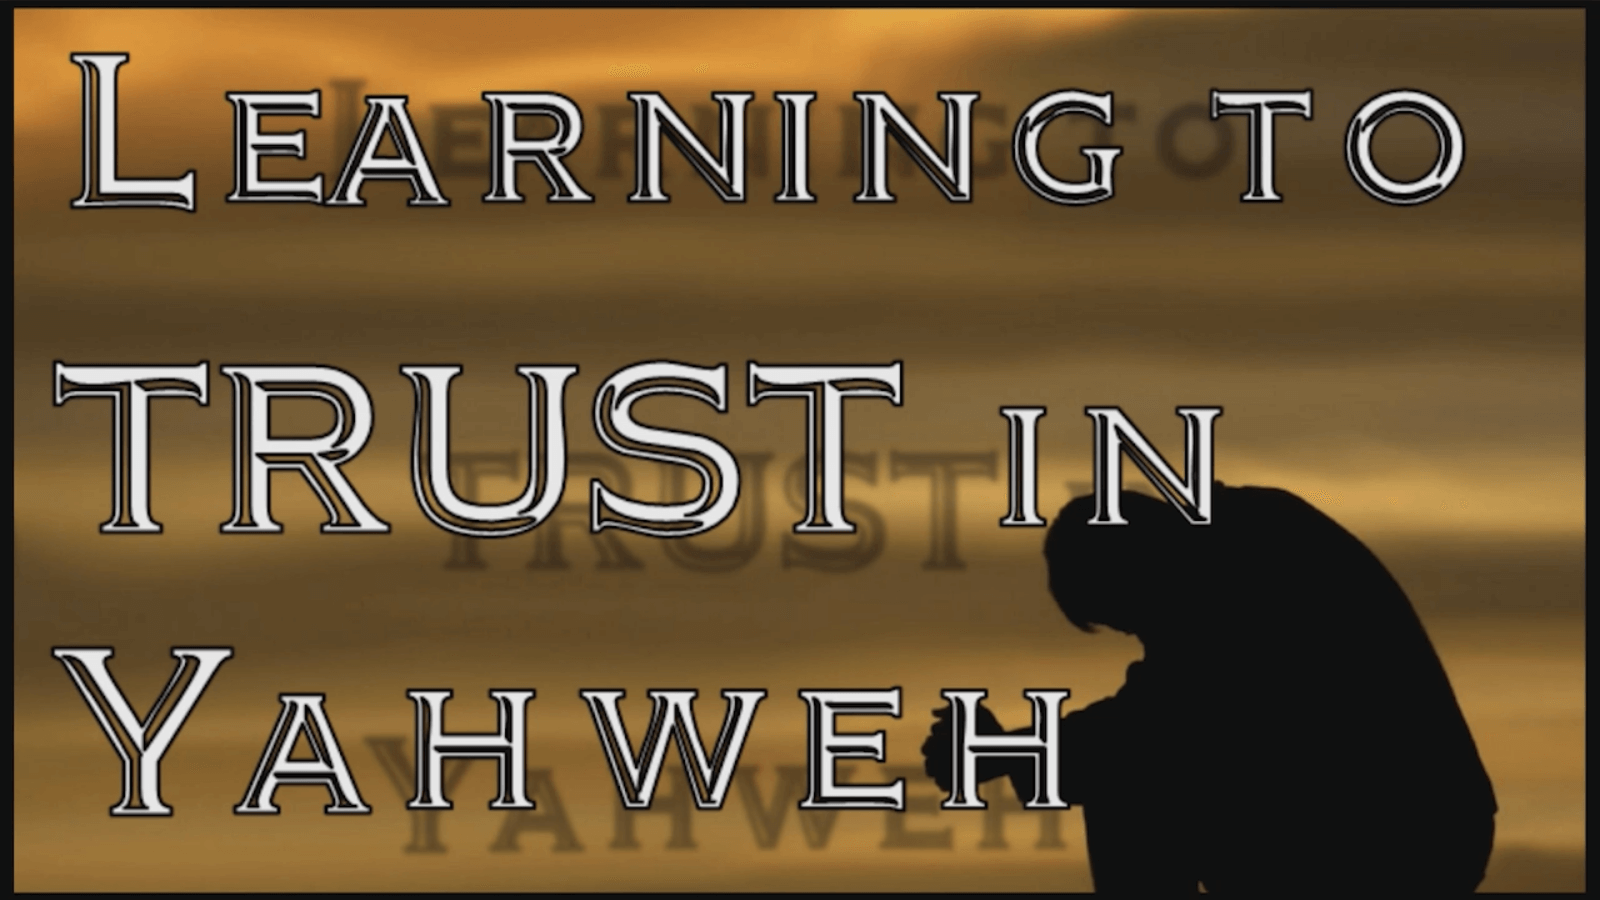 Learning to Trust in Yahweh